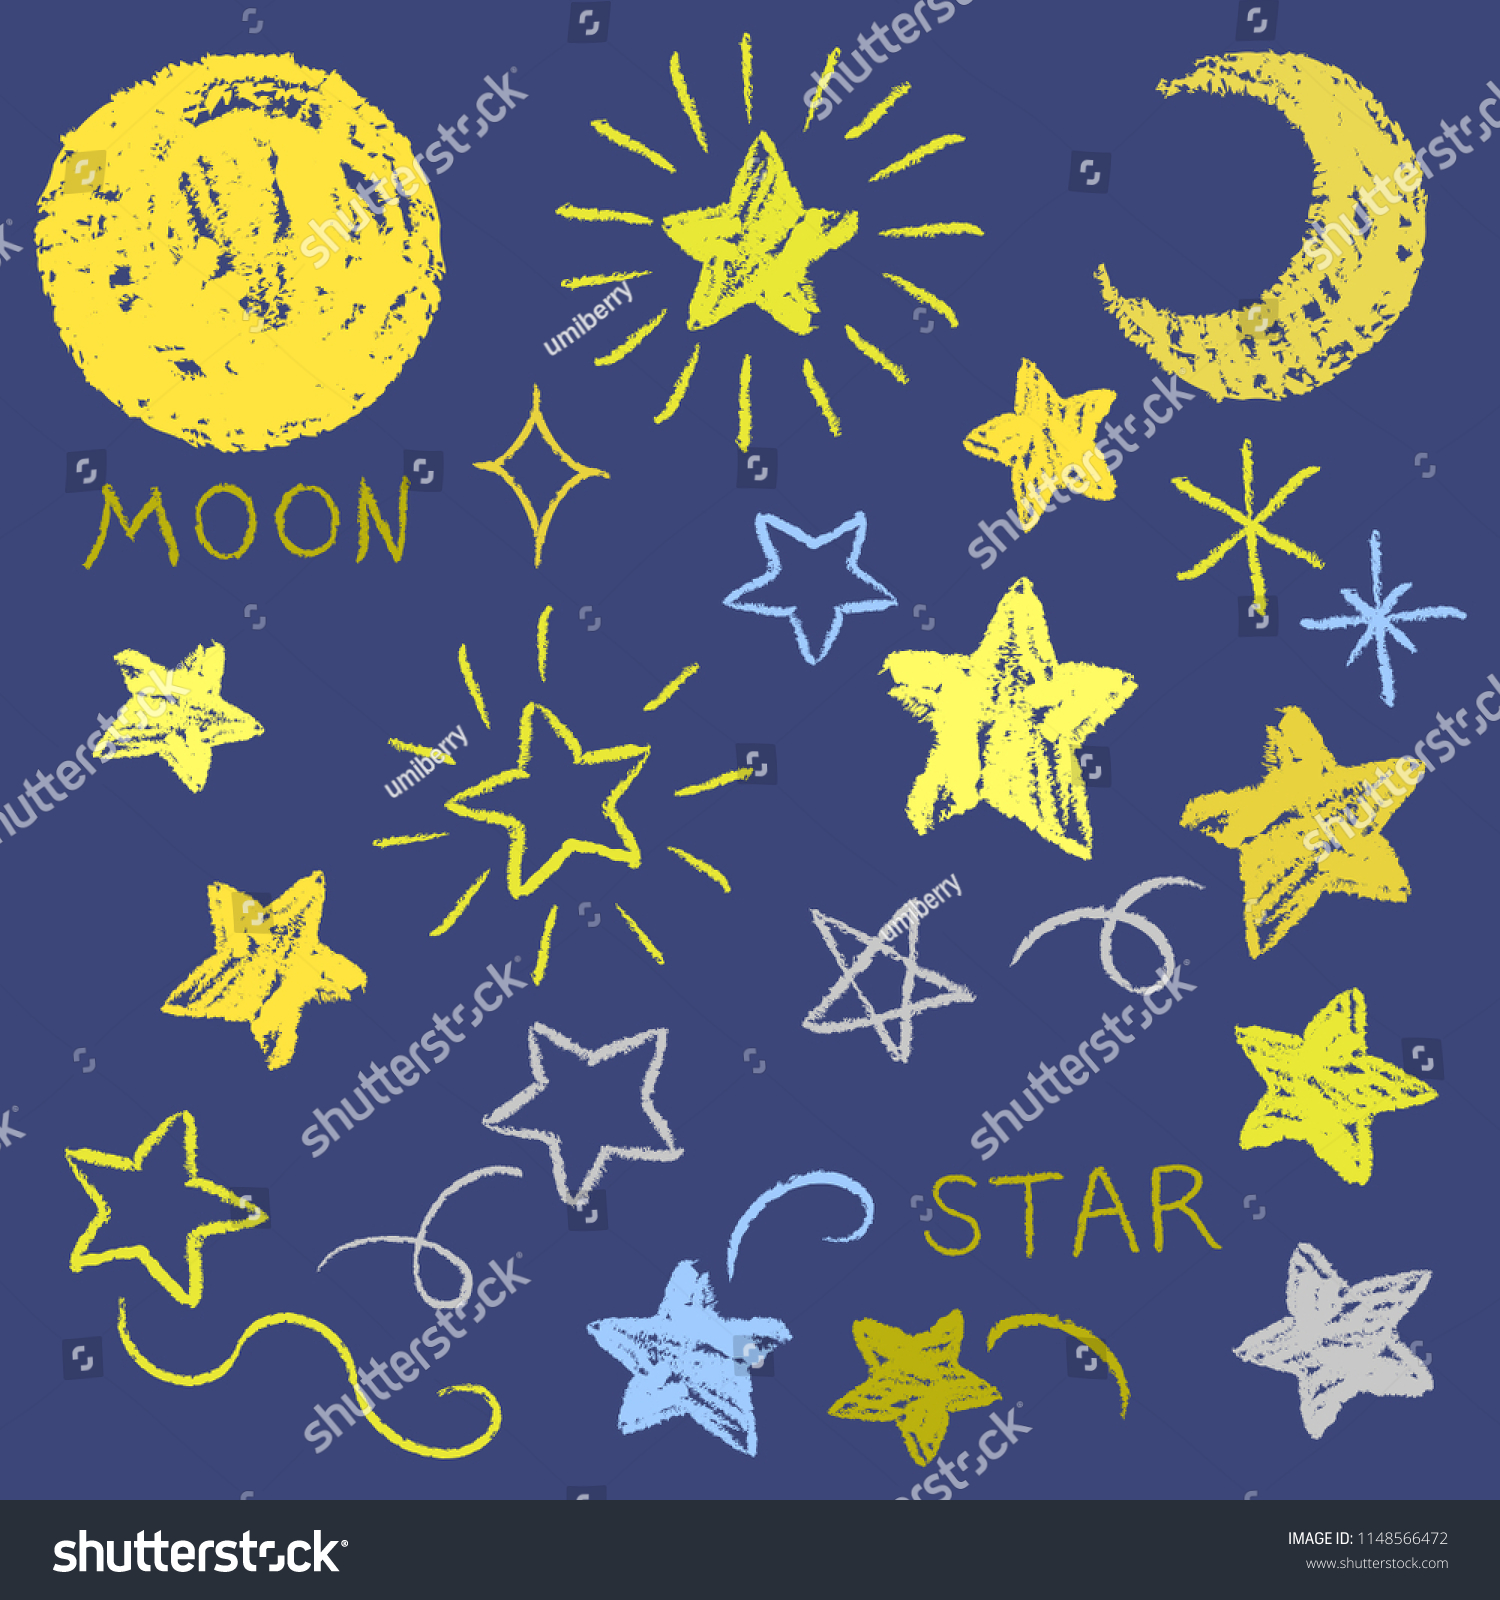 Hand Drawn Style Material Collection Moon Stock Vector (Royalty Free